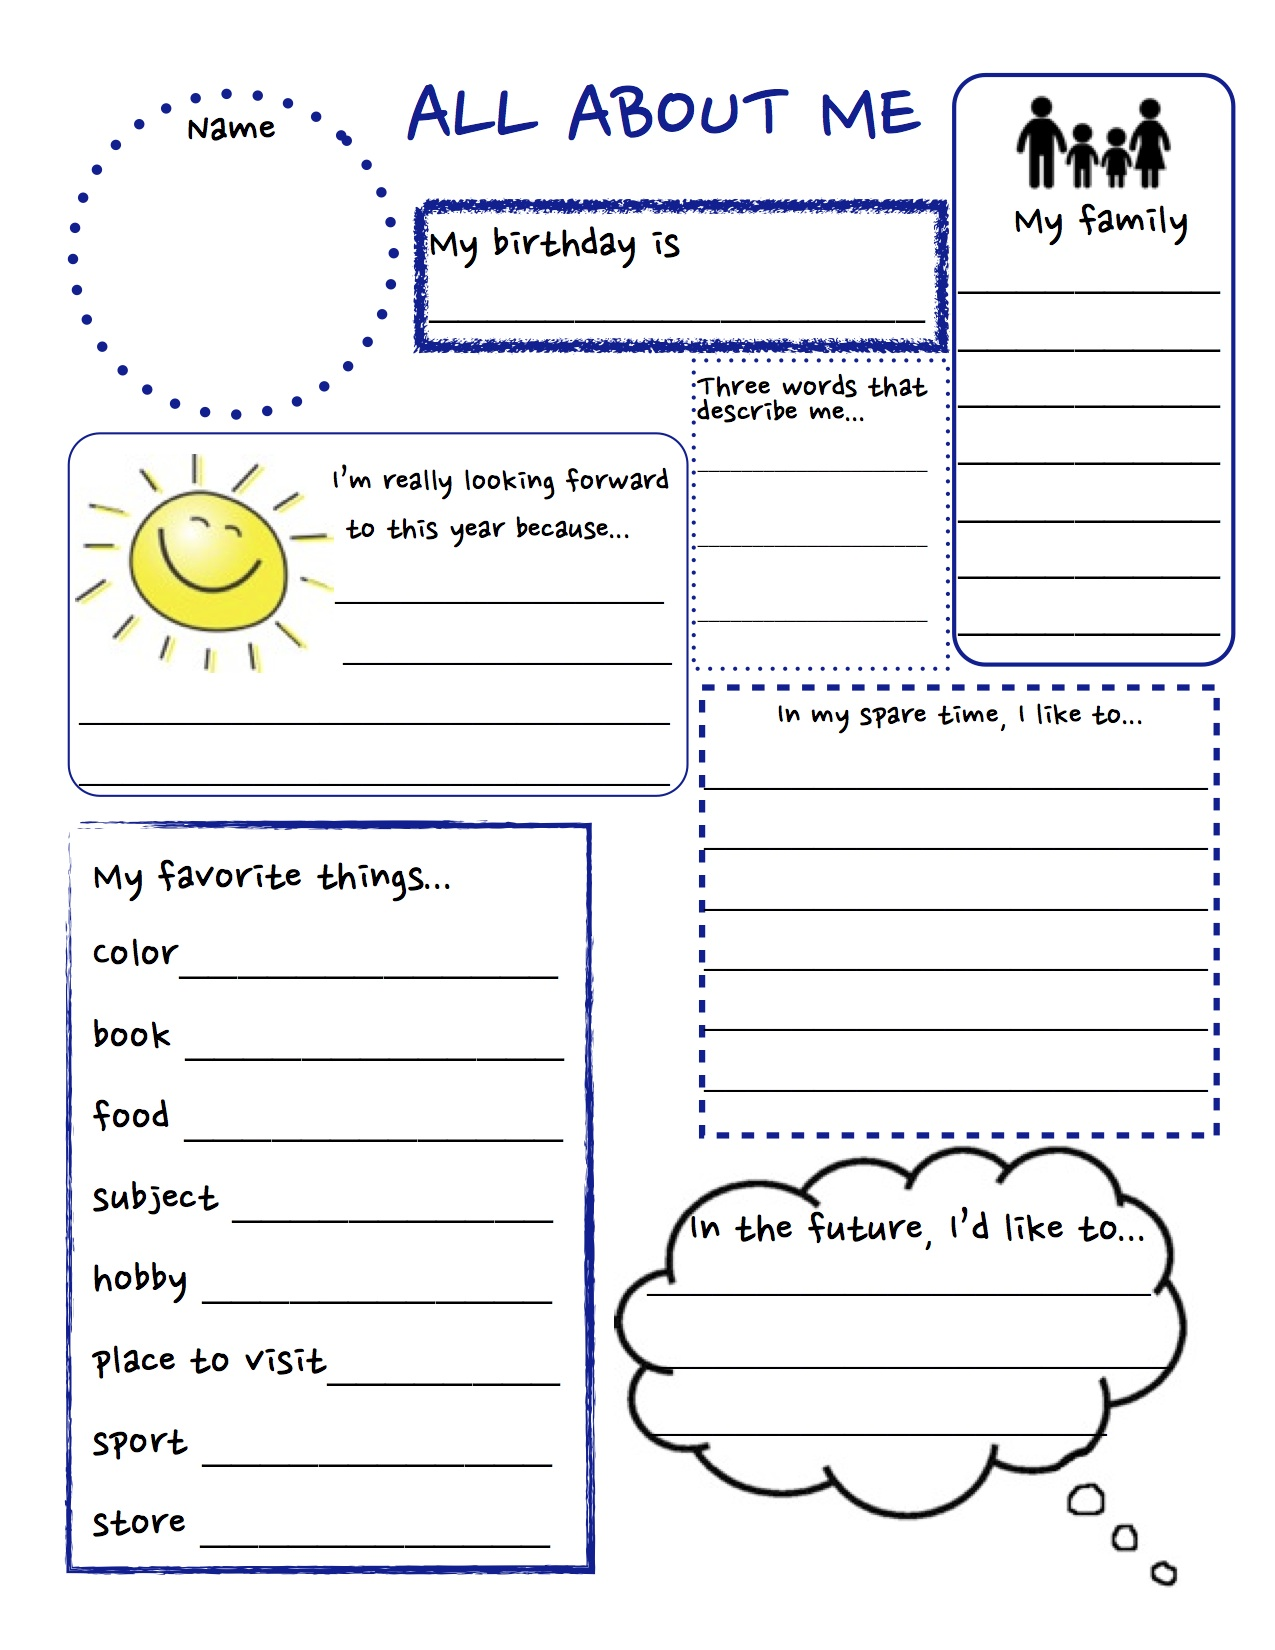 Worksheet Get To Know Me Worksheet Worksheet Fun Worksheet Study Site